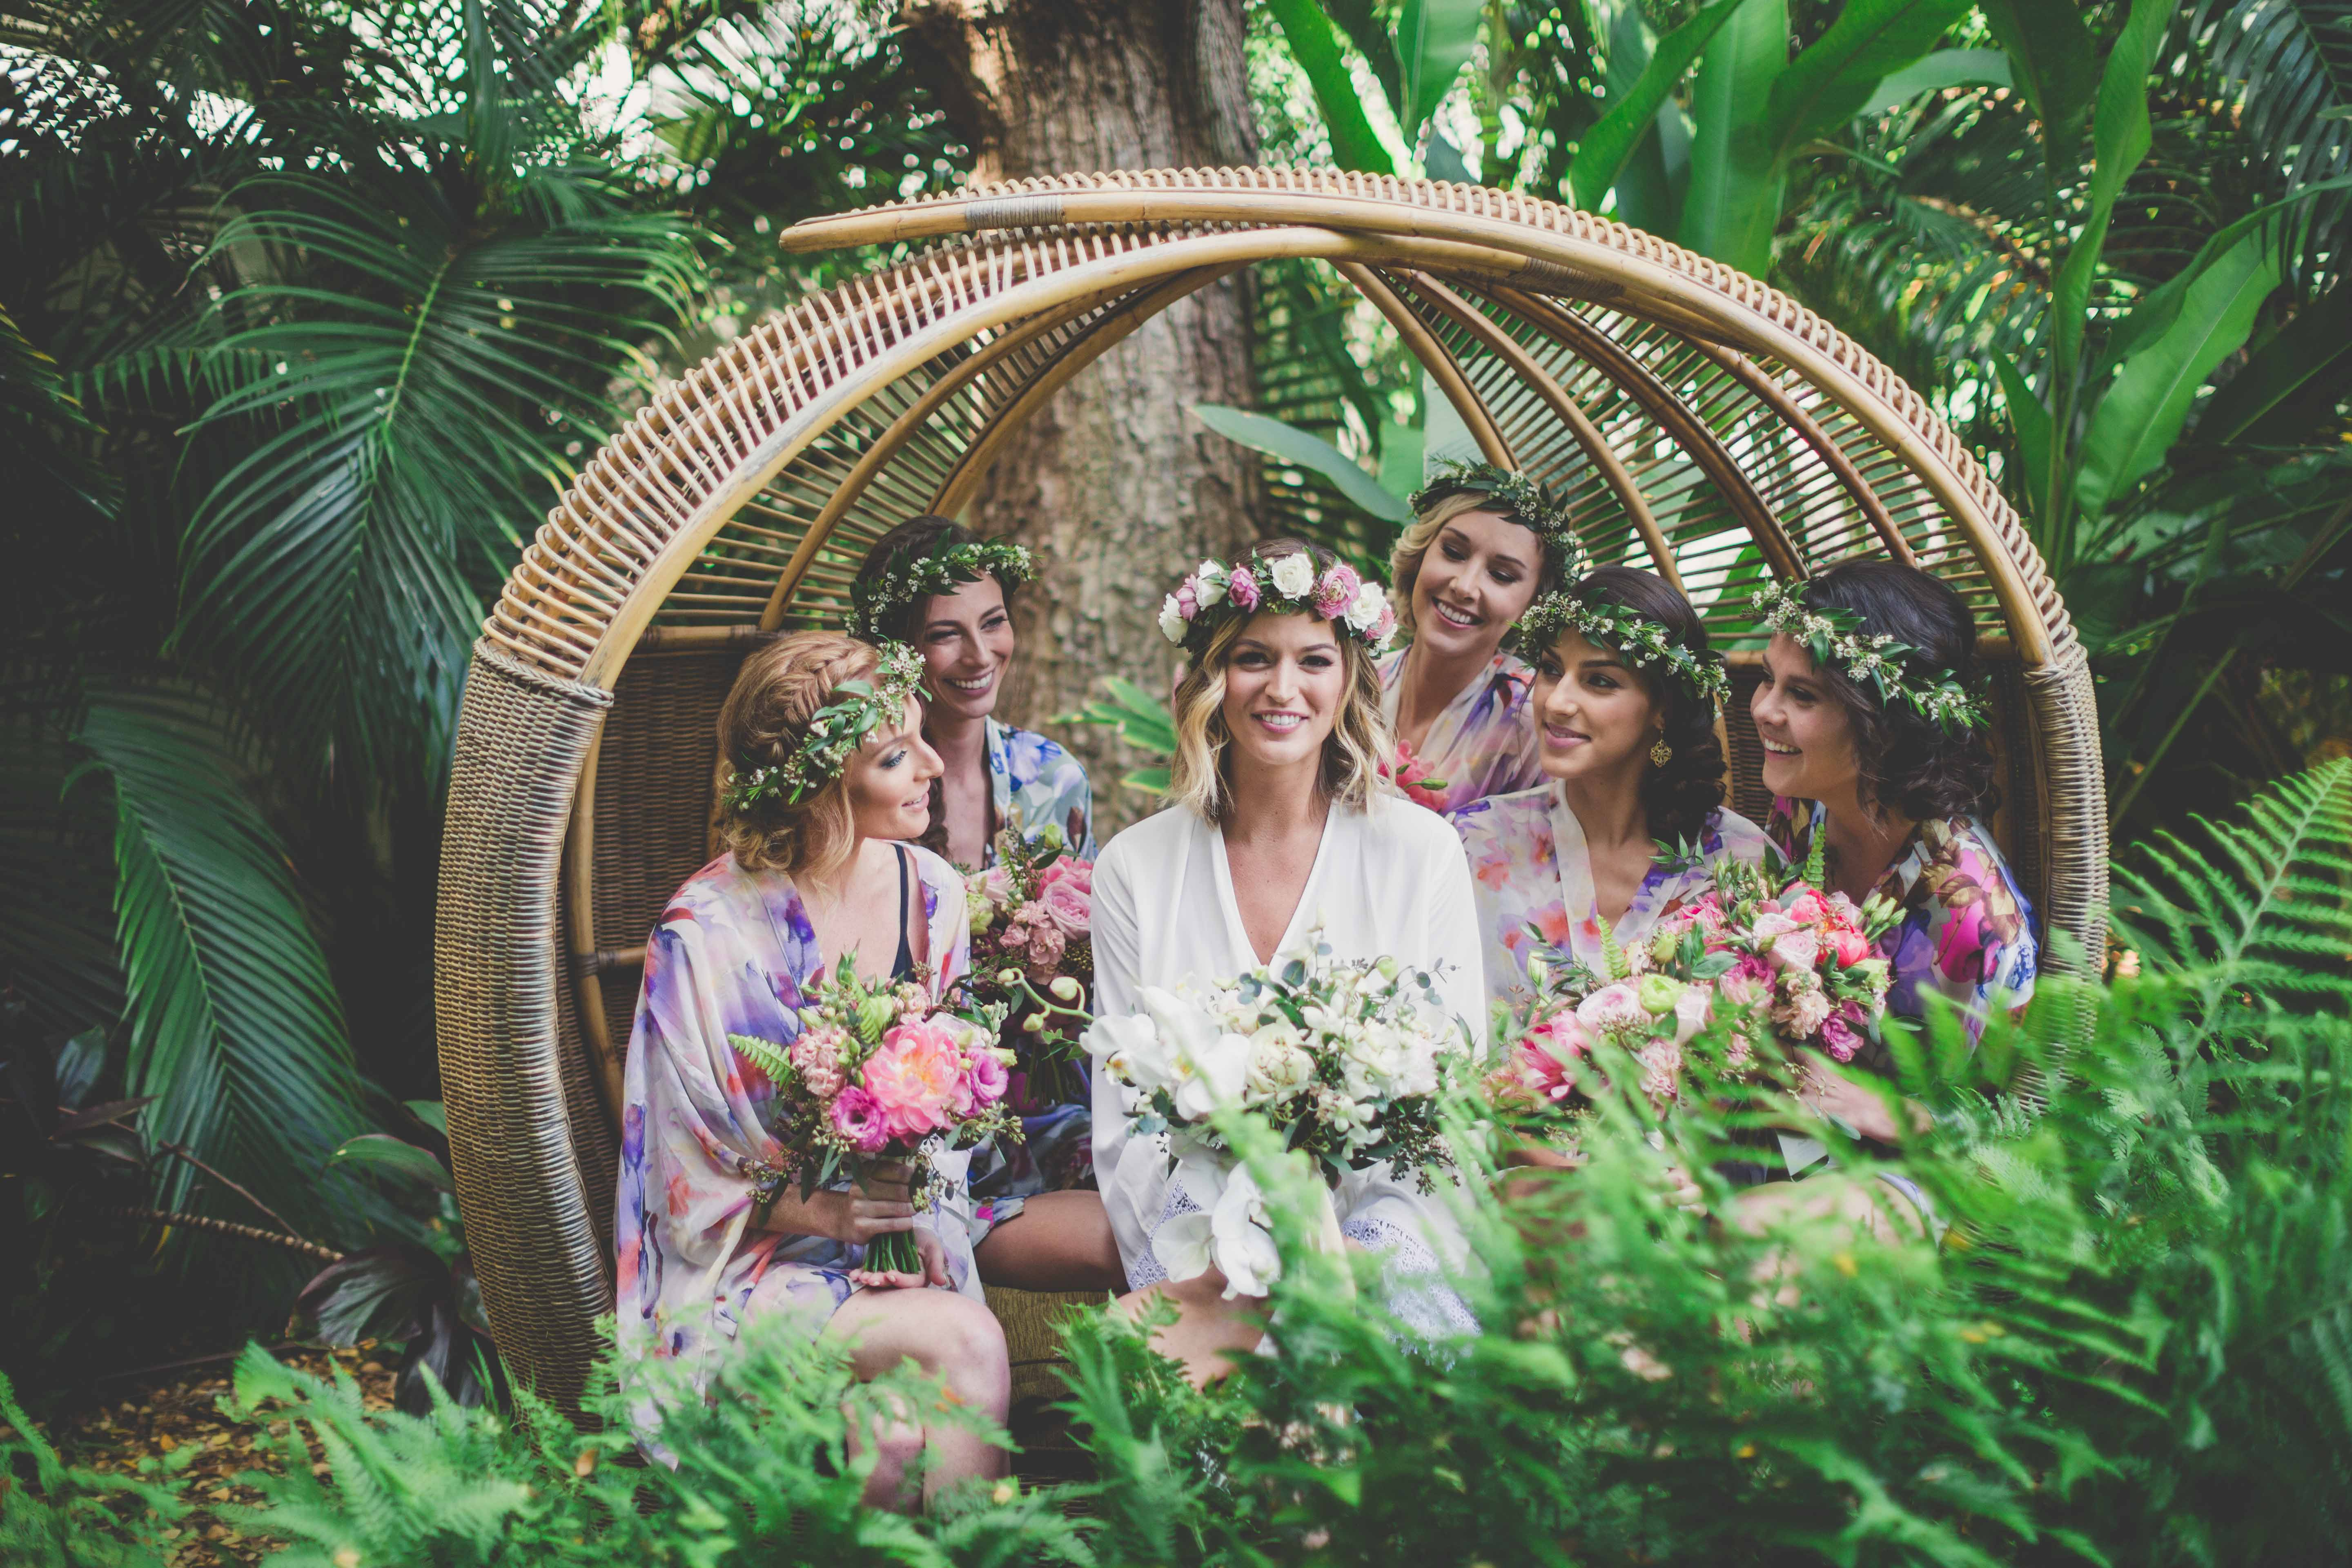 bride with bridesmaids in flower crowns in rattan circle chair